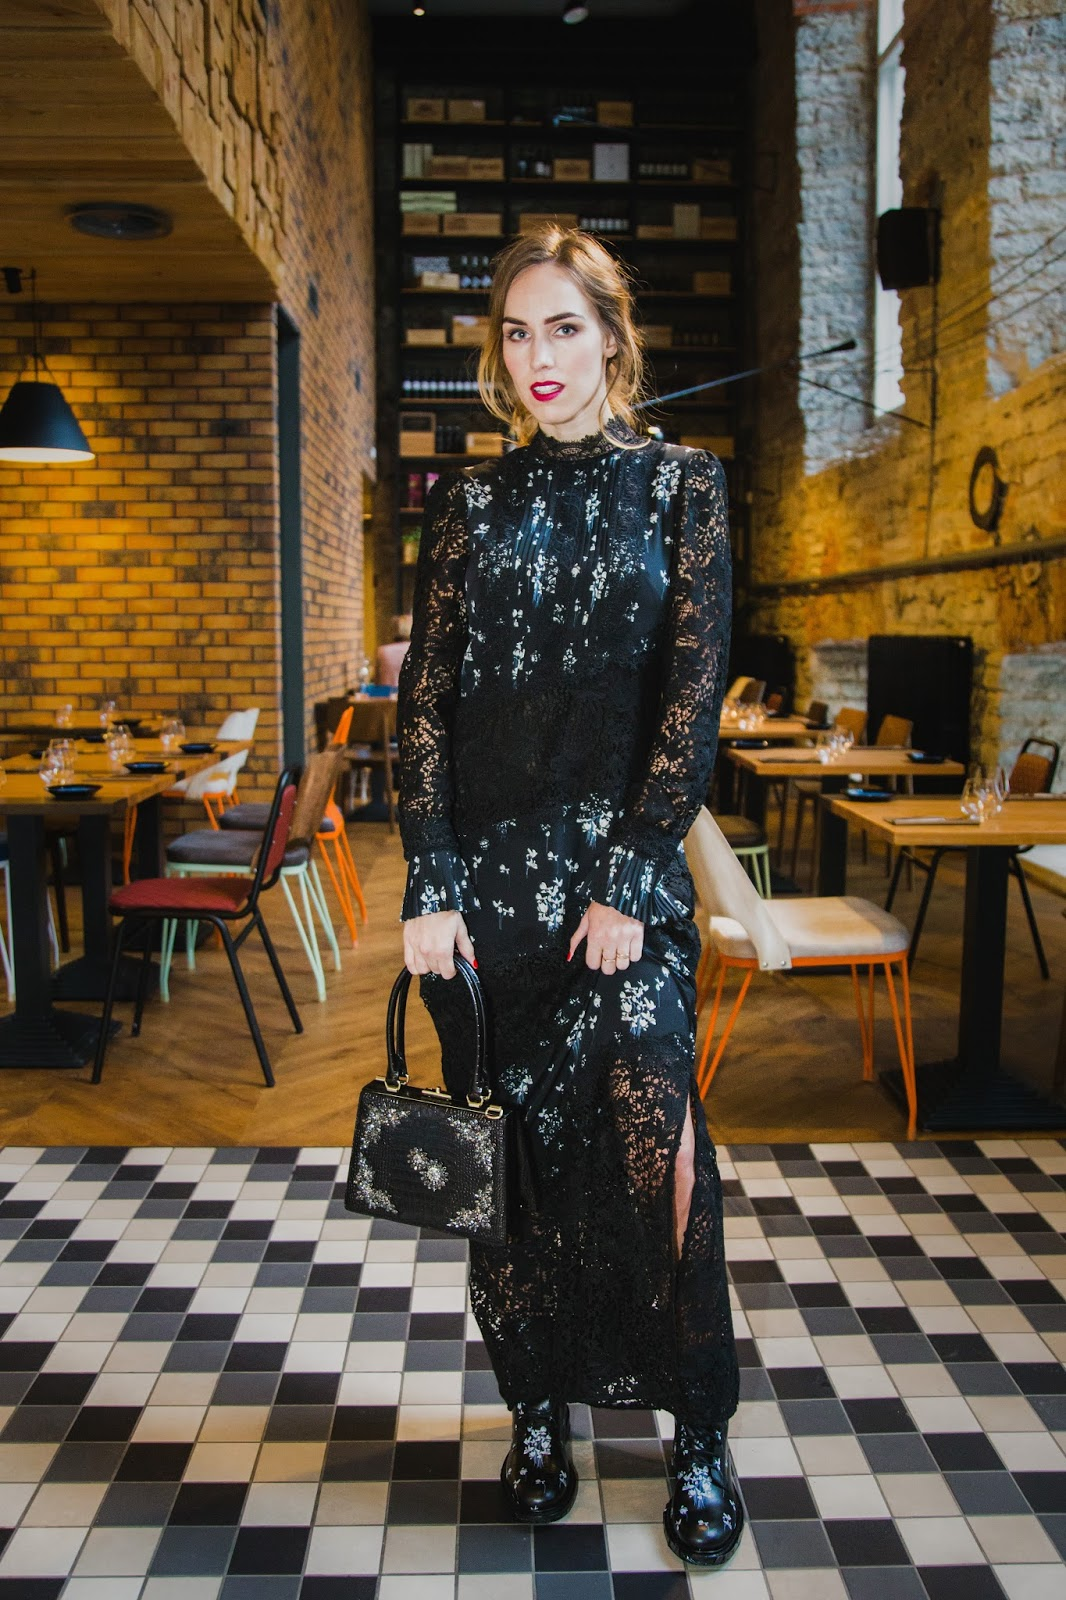 erdem x hm collaboration collection lace maxi dress outfit boots